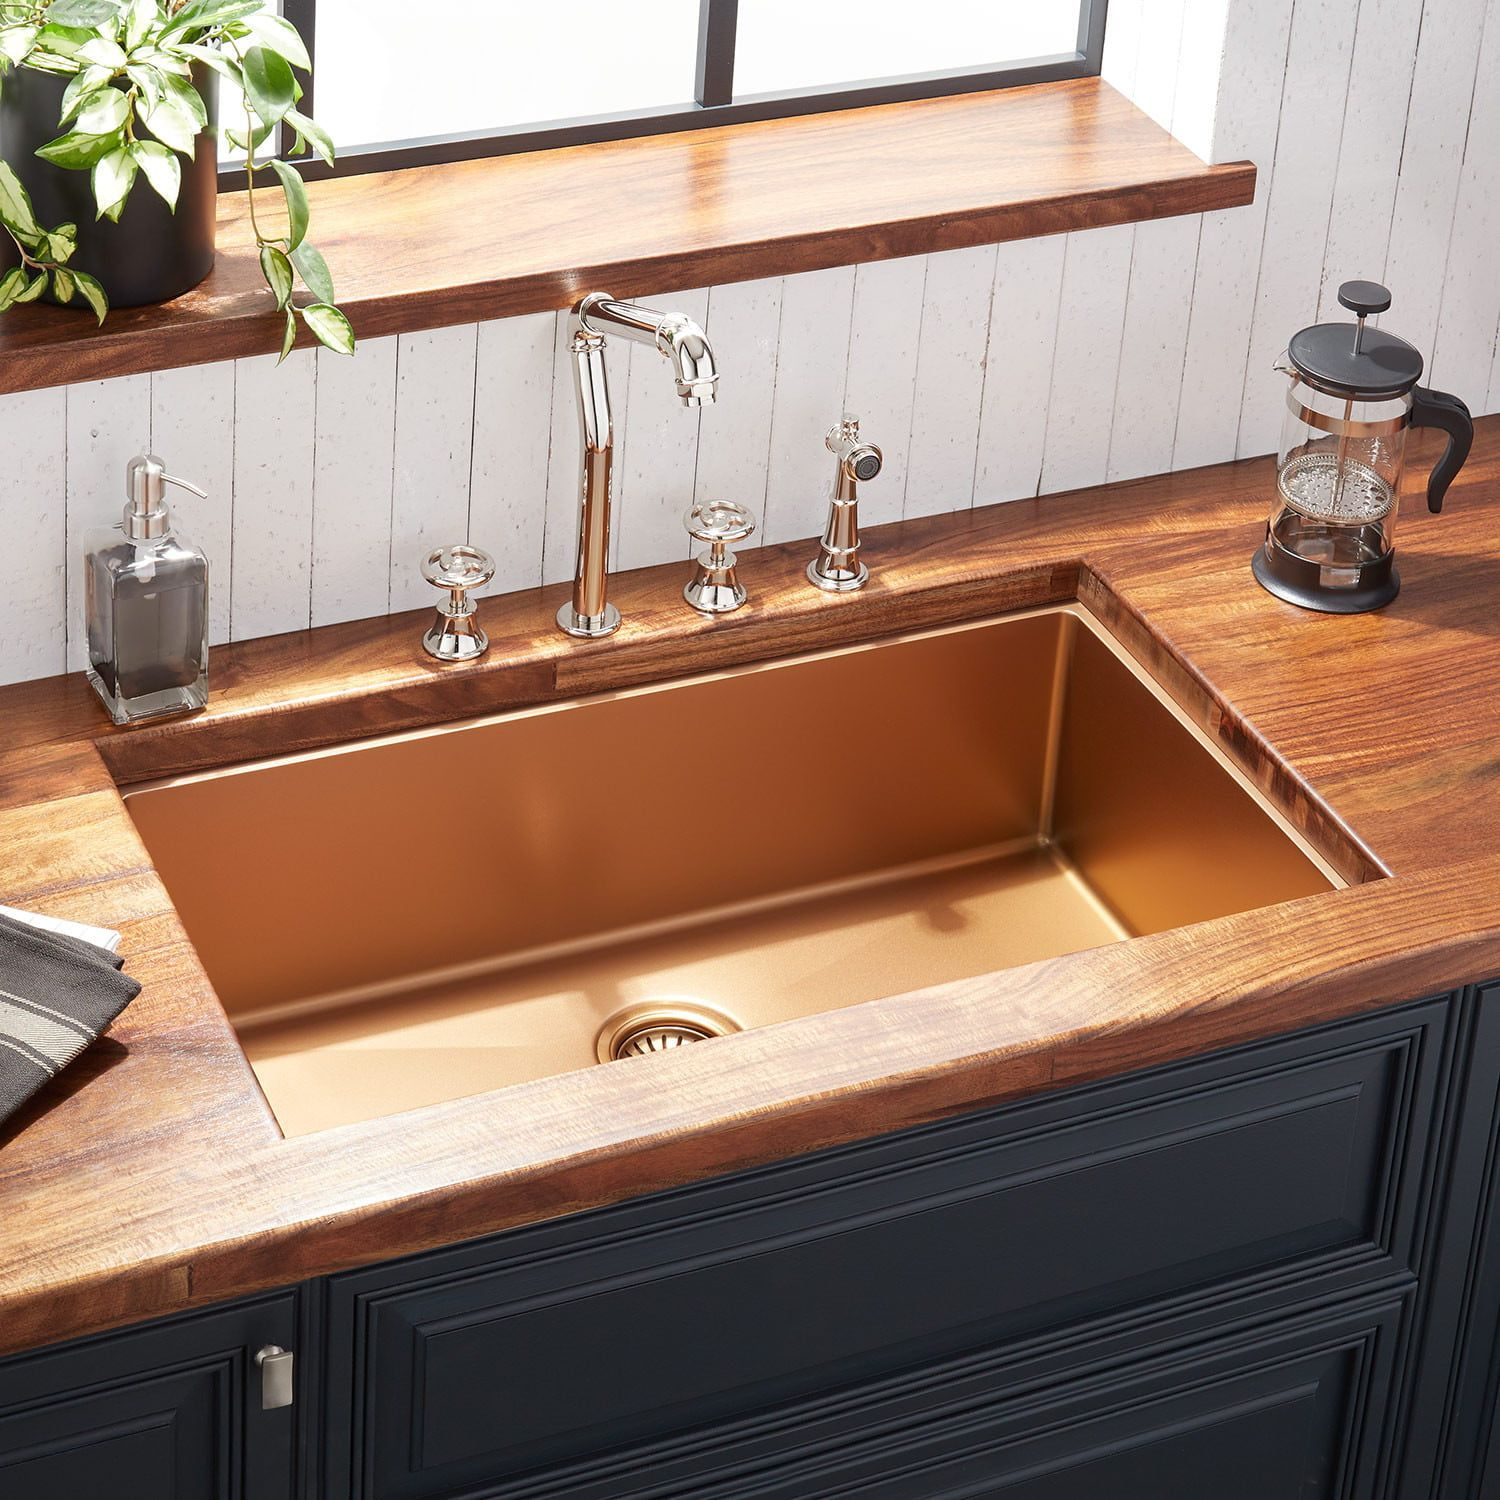 32 Atlas Stainless Steel Undermount Kitchen Sink Bronze